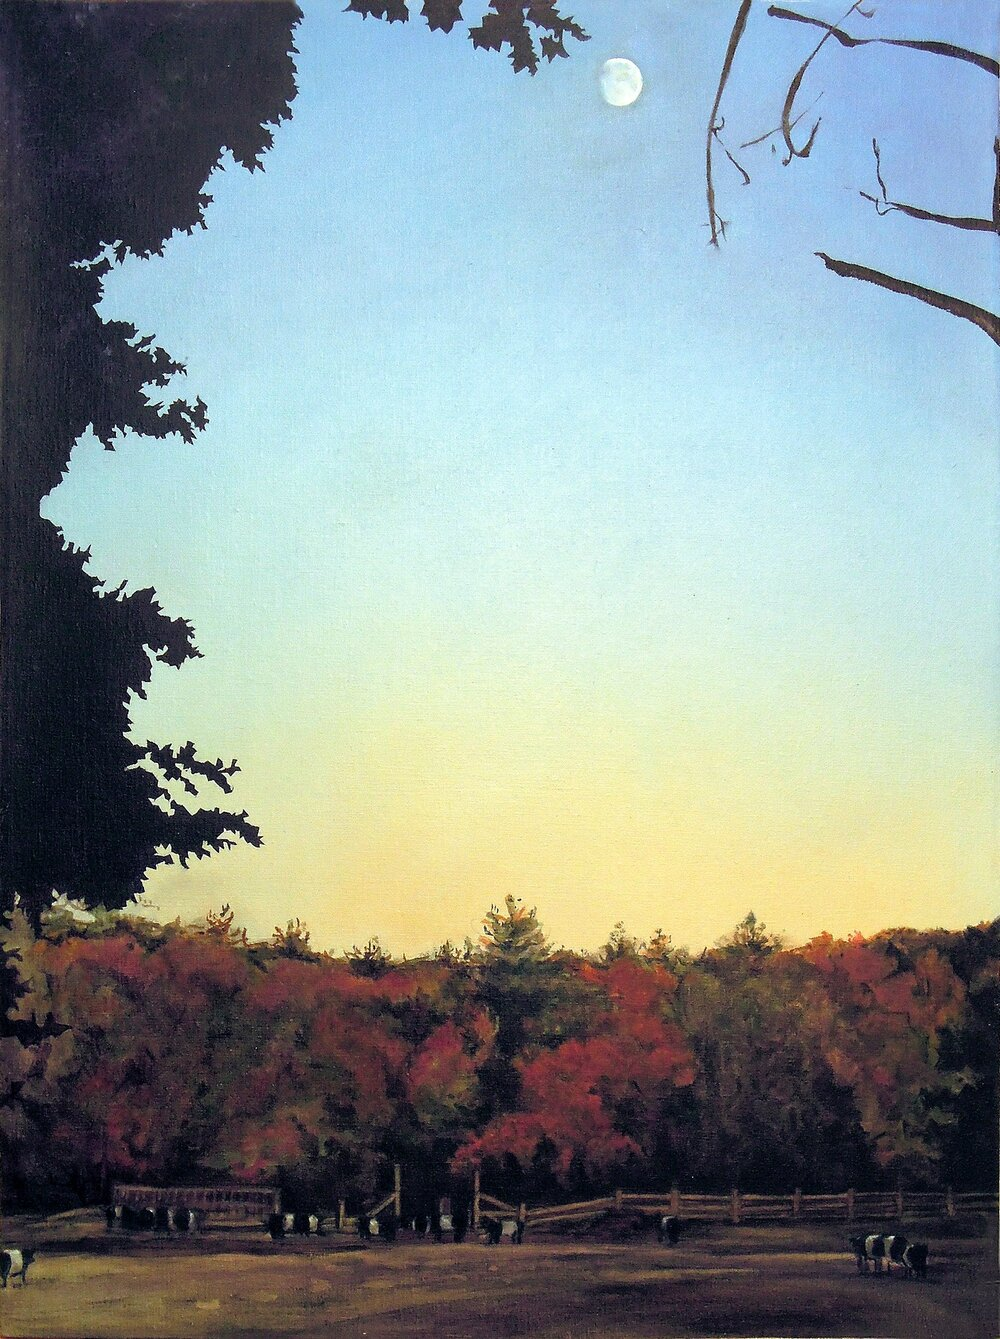 Dusk at Flint's Field  oil on linen 2014 *